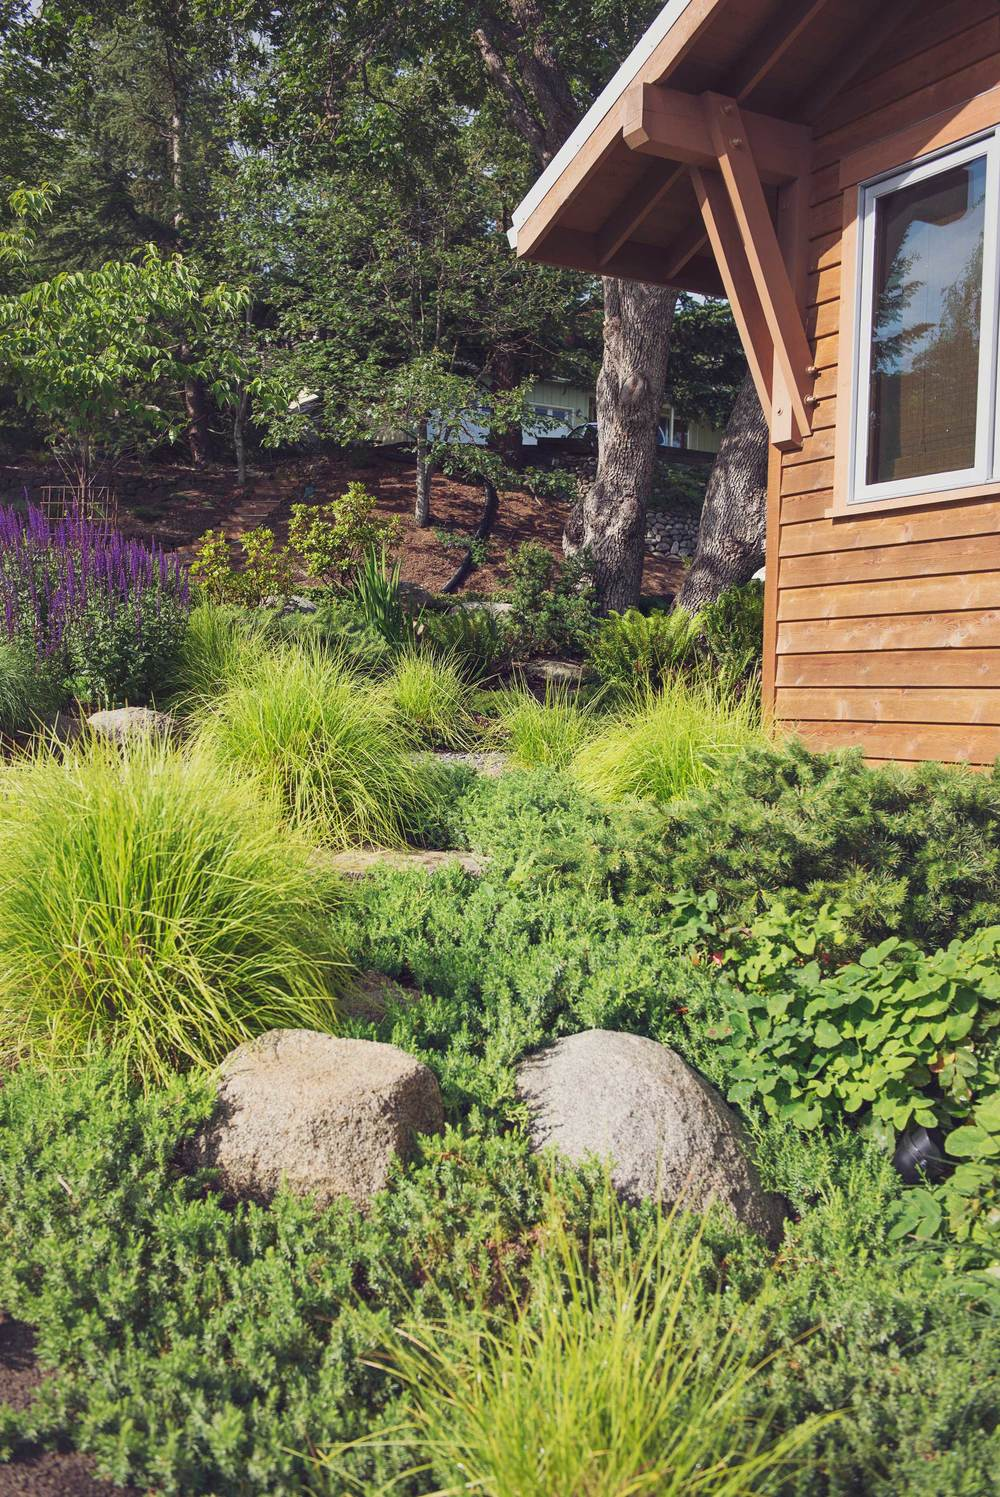 Foundation Plantings with Year-Round Interest